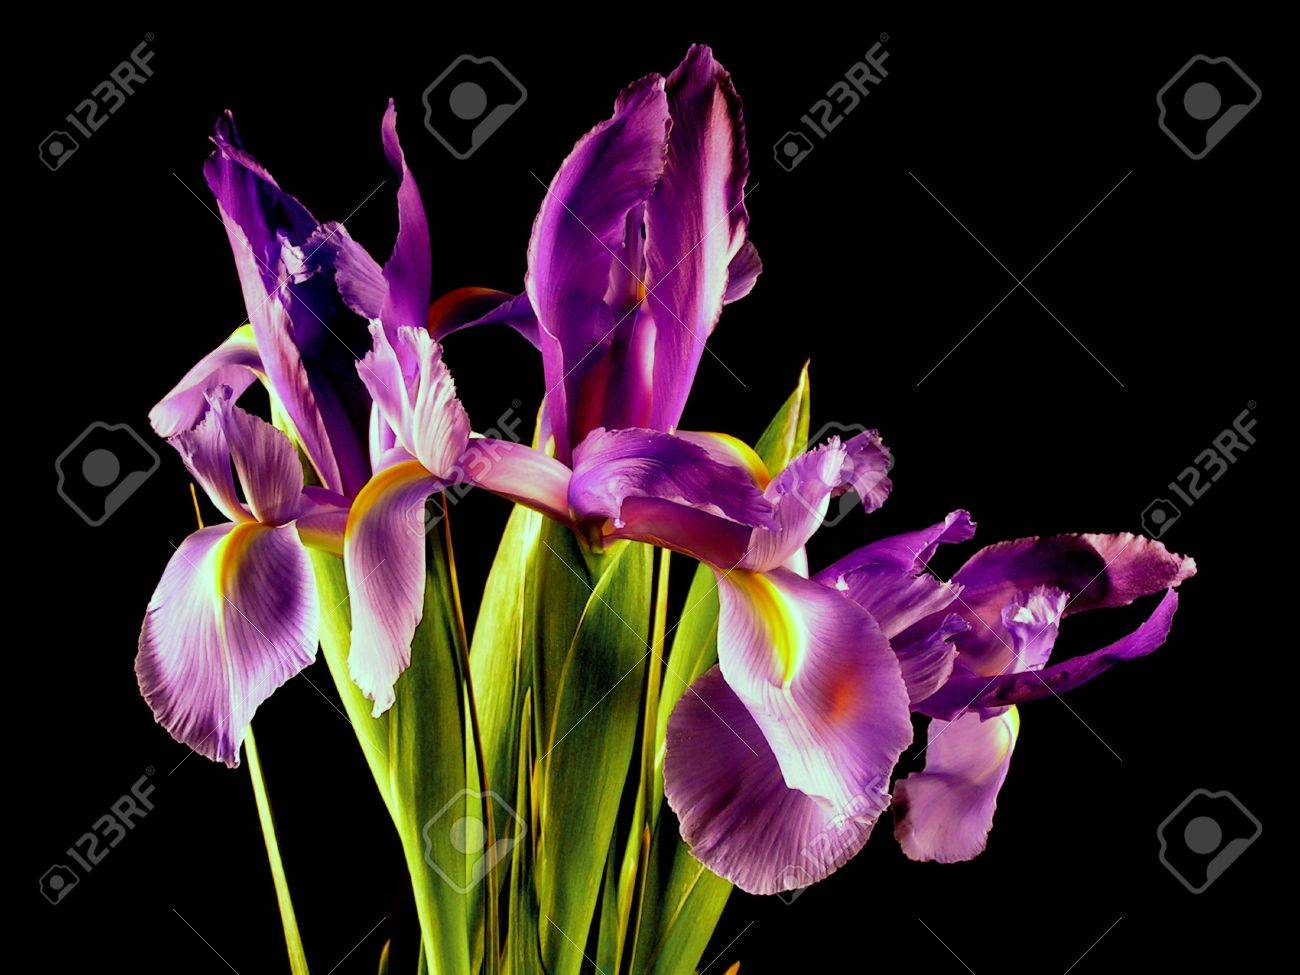 A bunch of purple iris flowers in bloom on a black background. Stock Photo - 310832